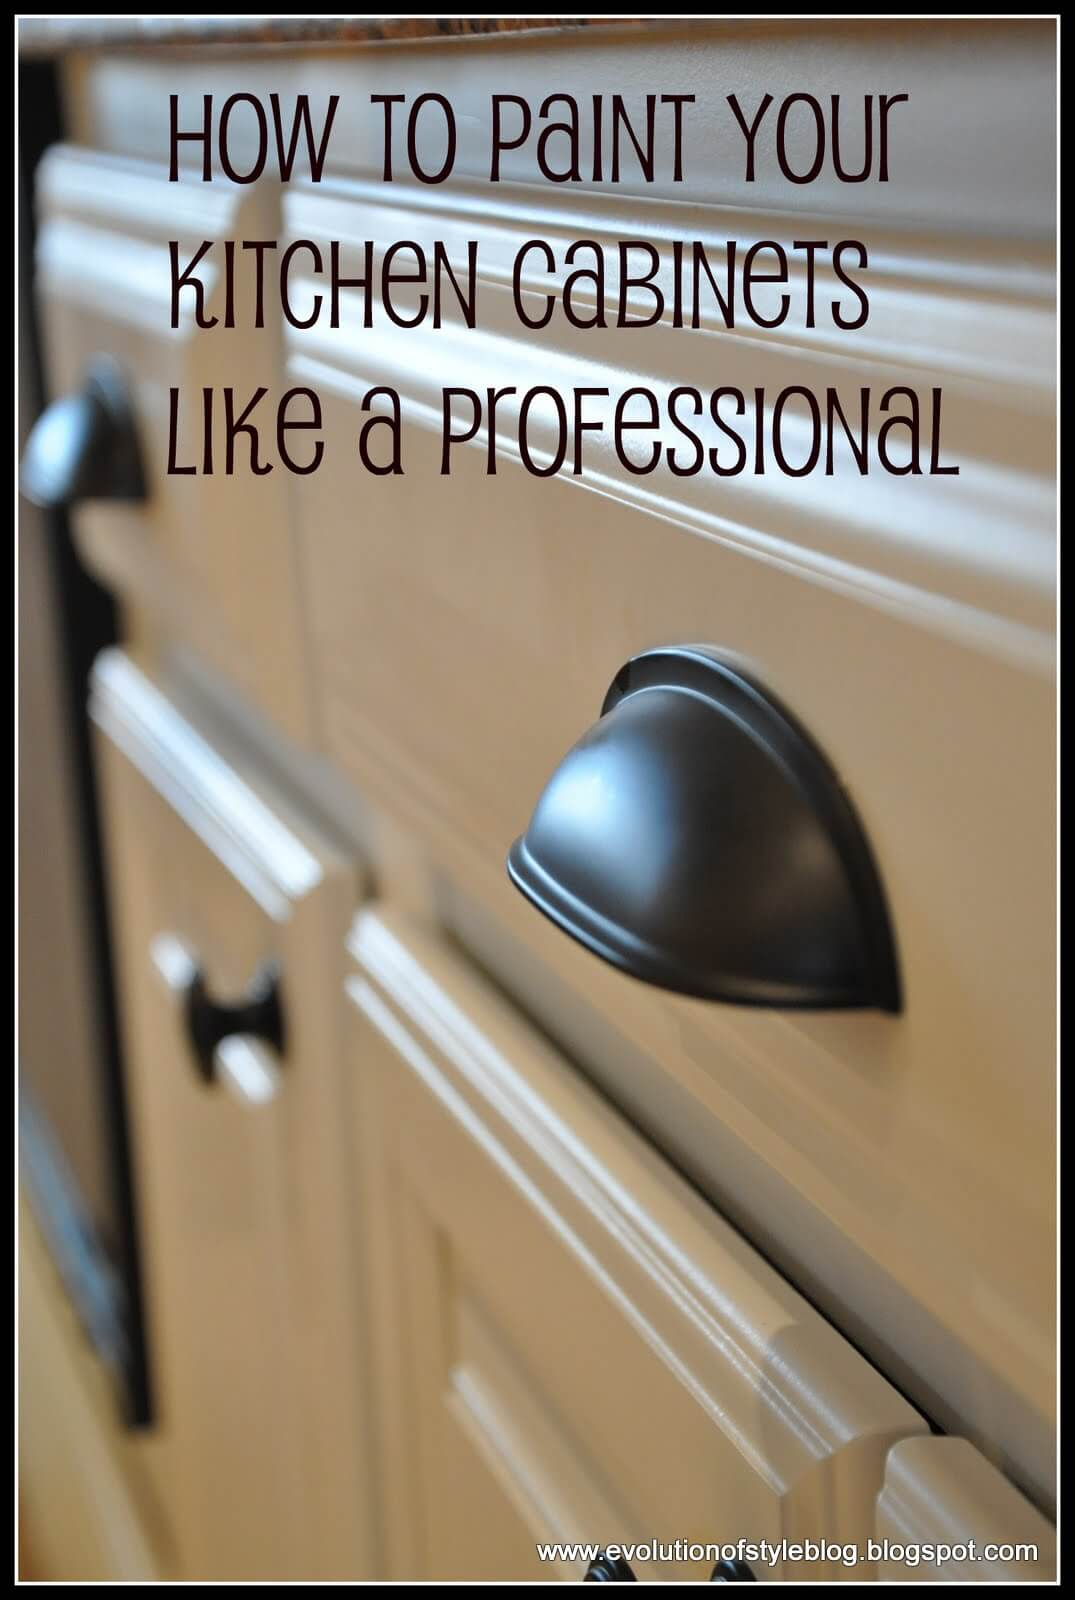 Paint Doors and Drawers like a Pro